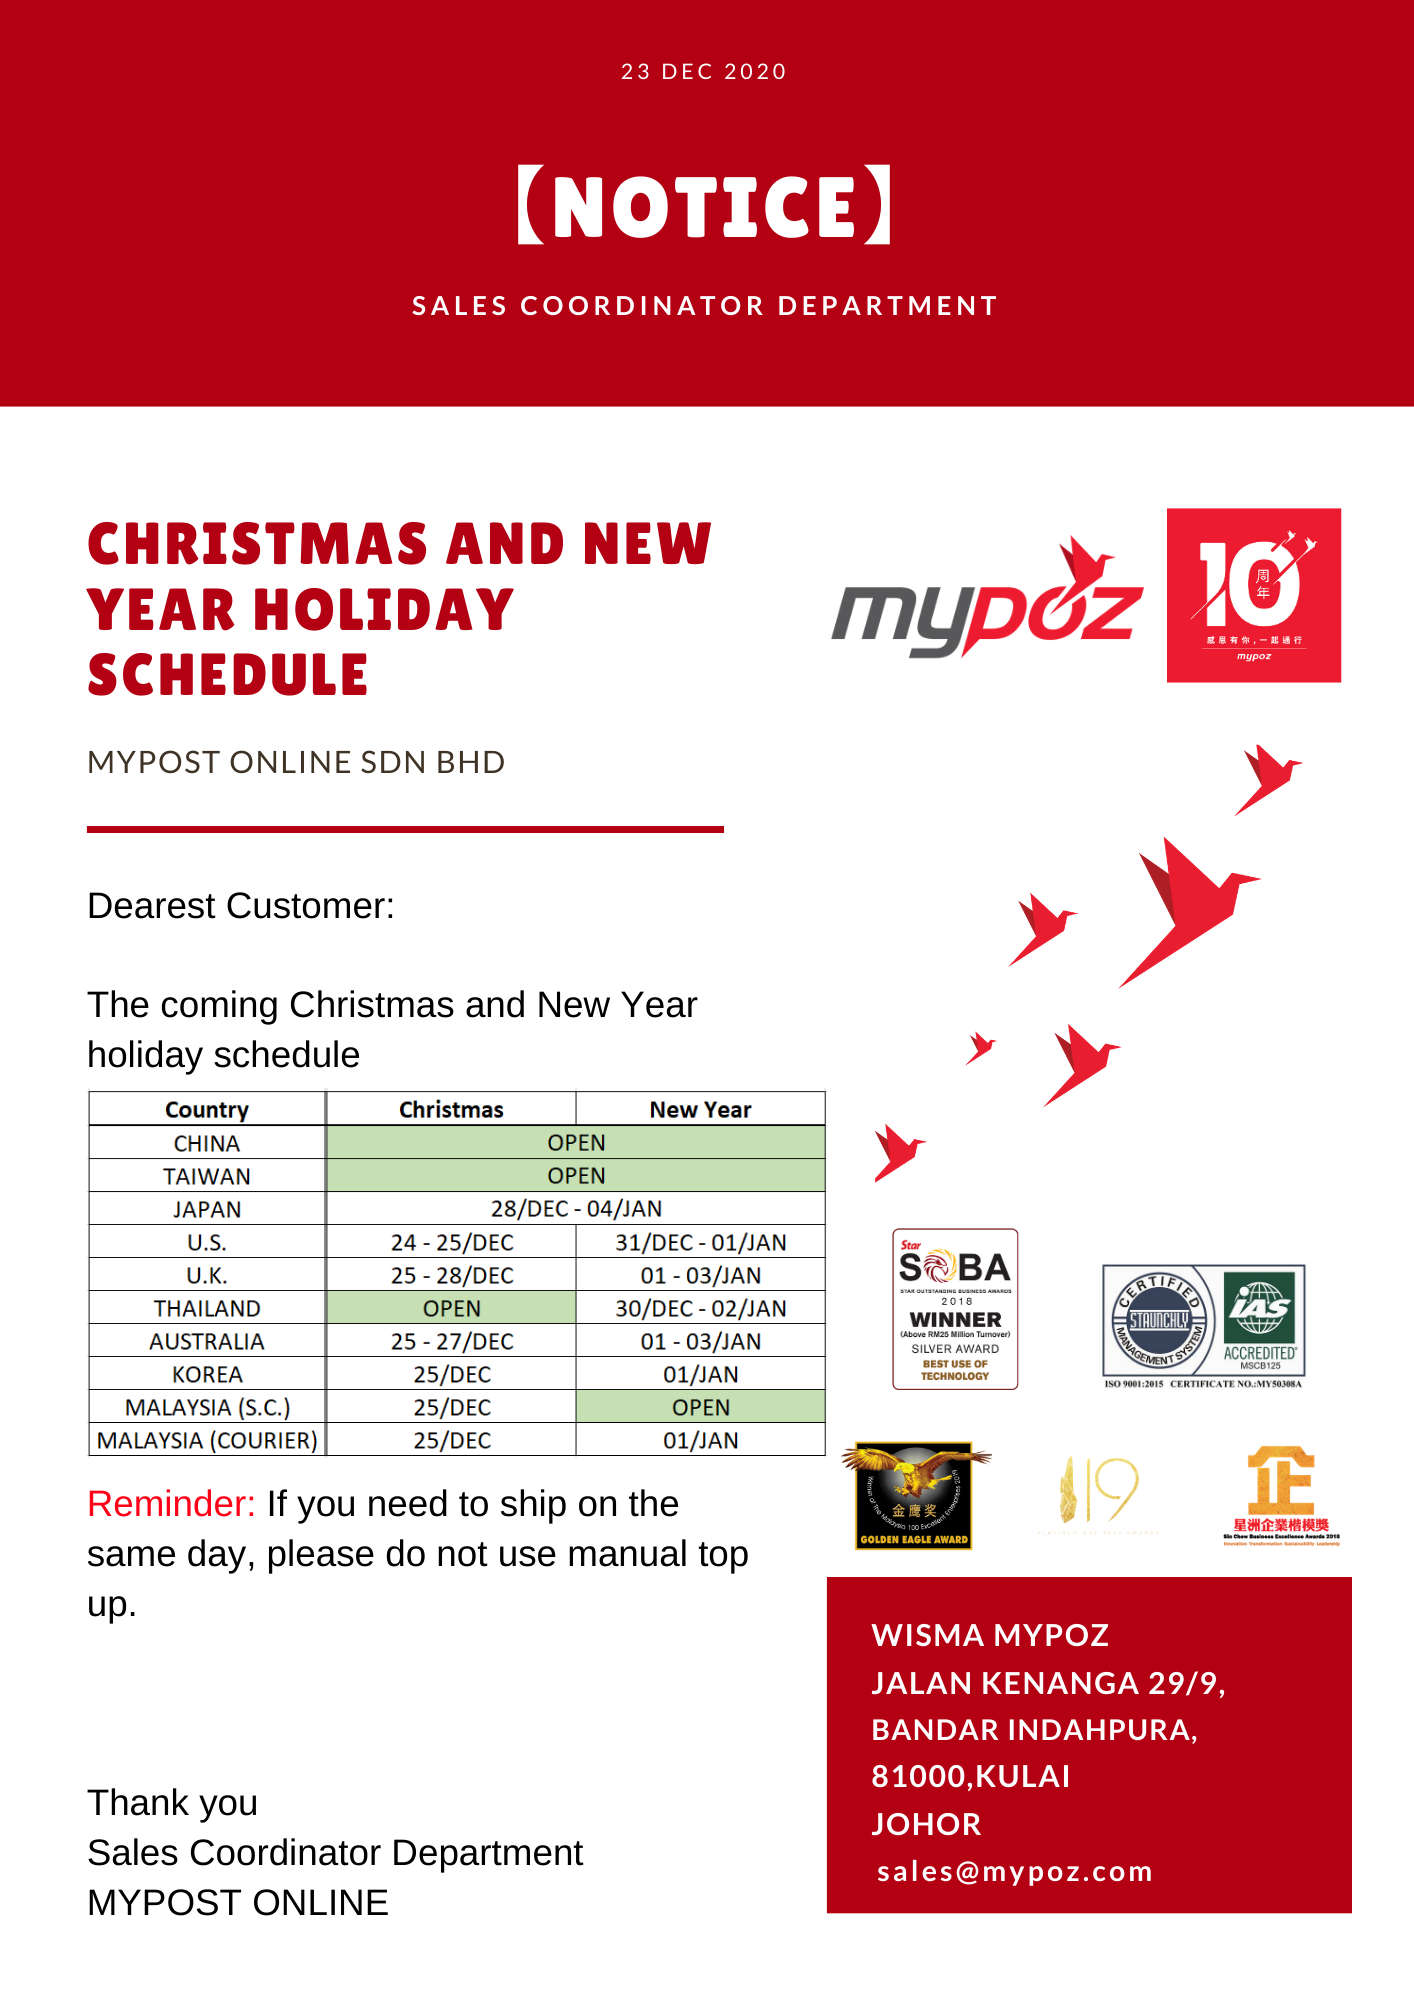 【Notice】Christmas and New Year holiday schedule